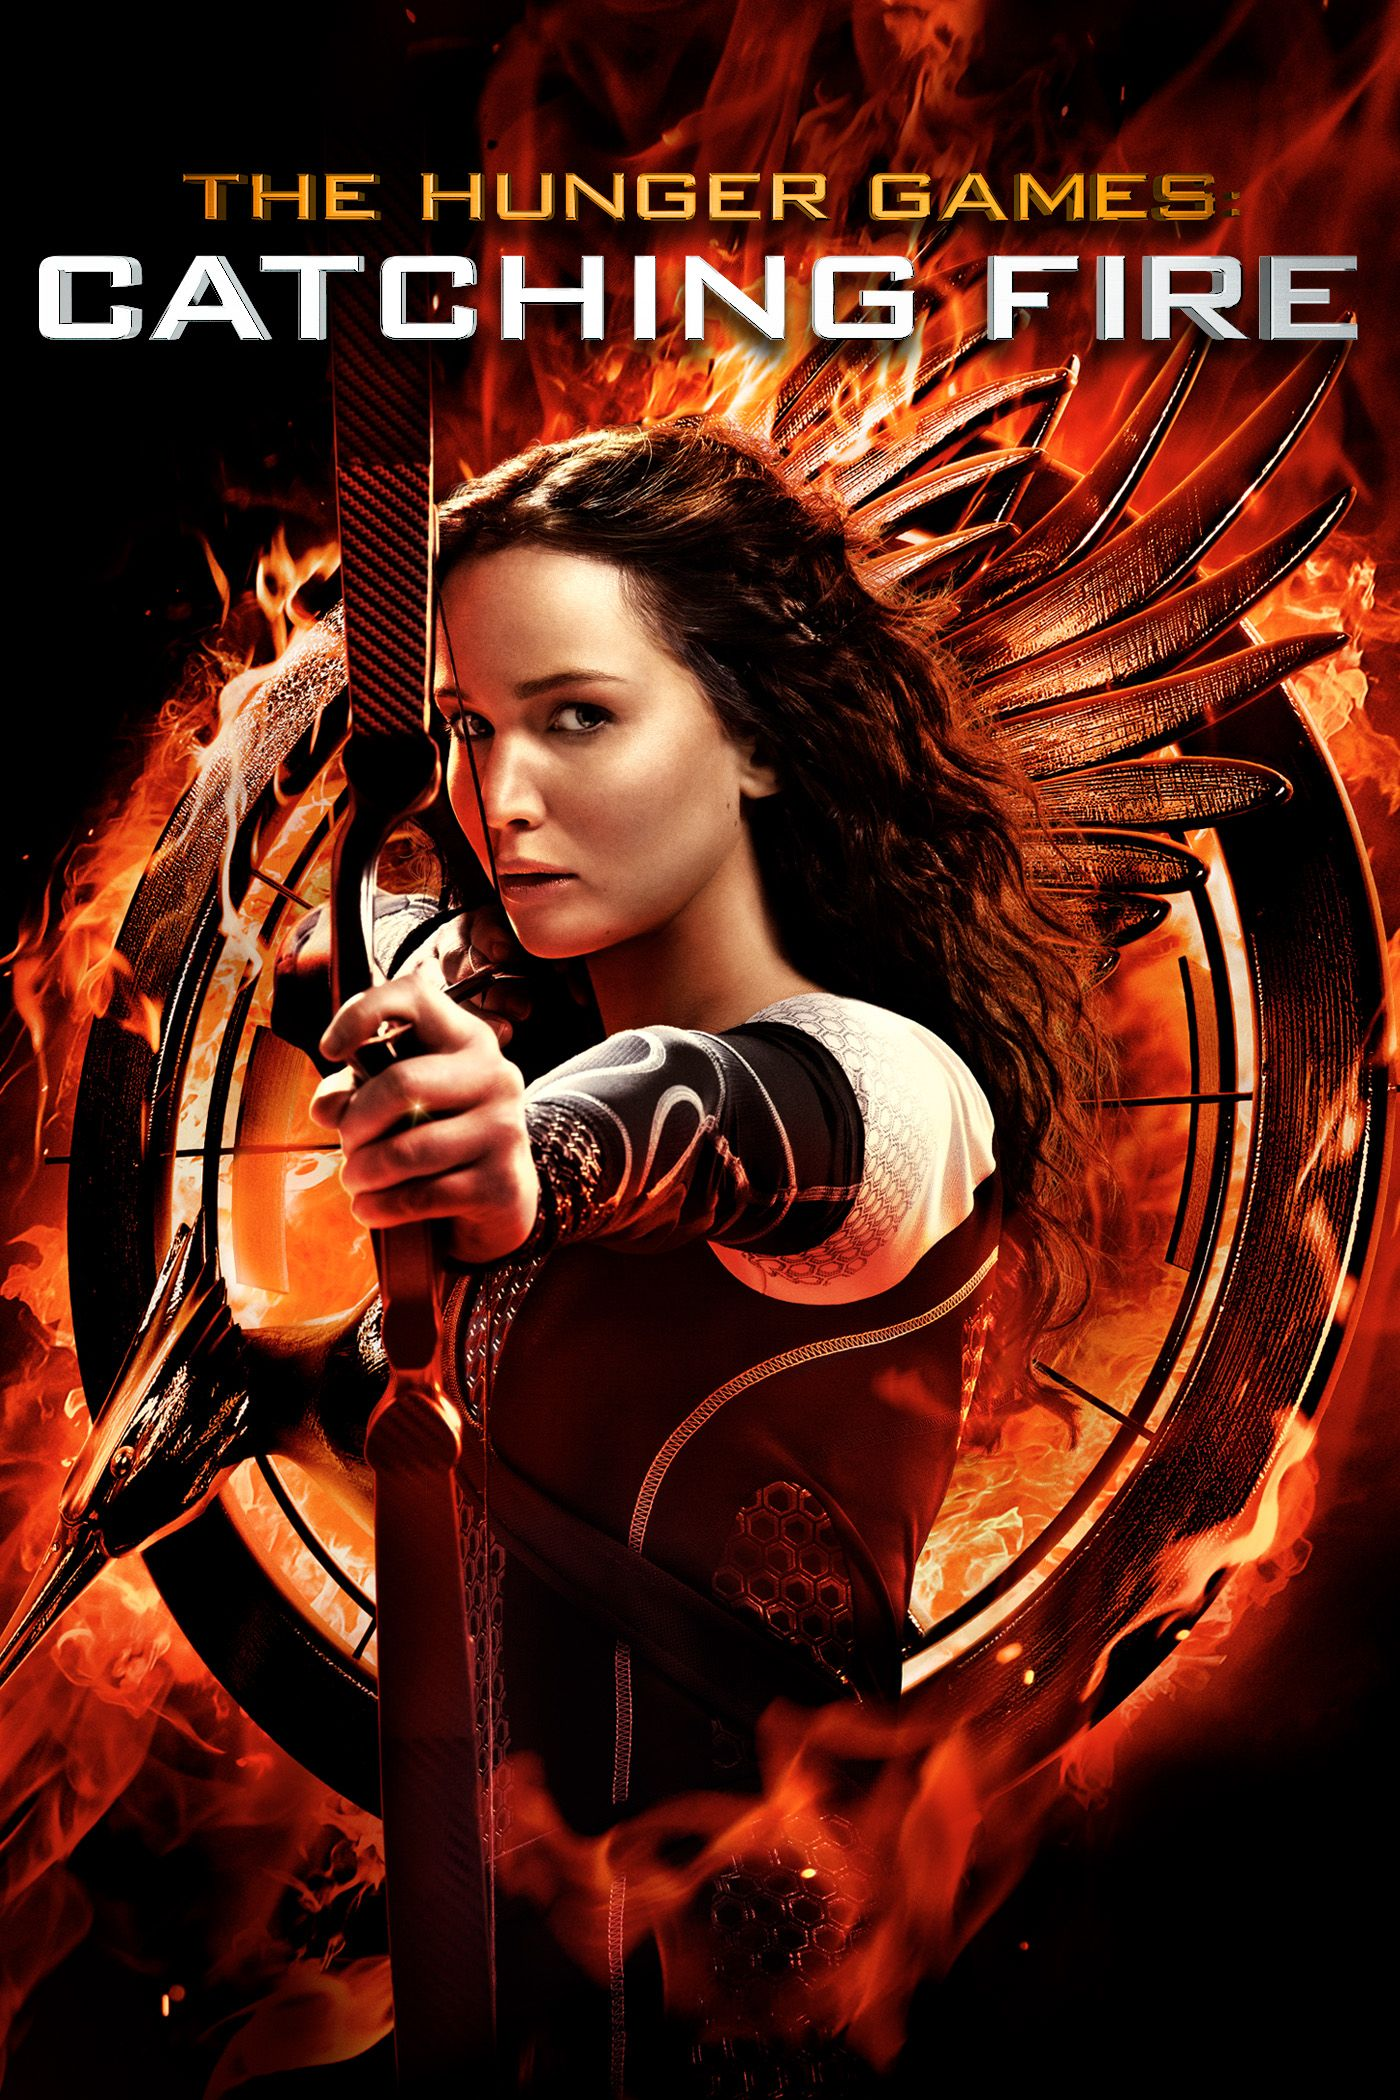 the hunger games full movie online free